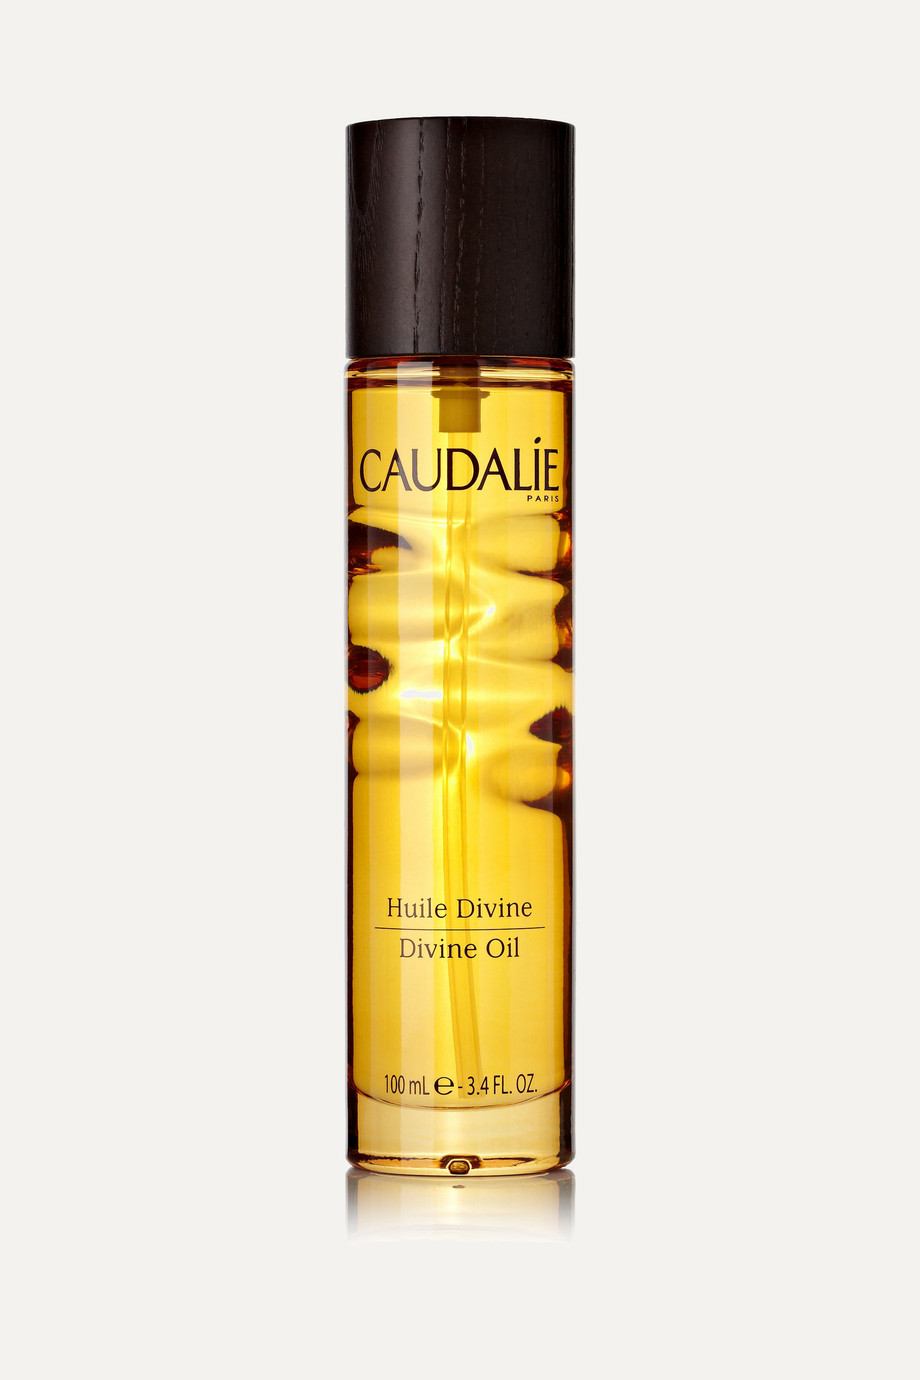 Divine Oil, 100ml, by Caudalie